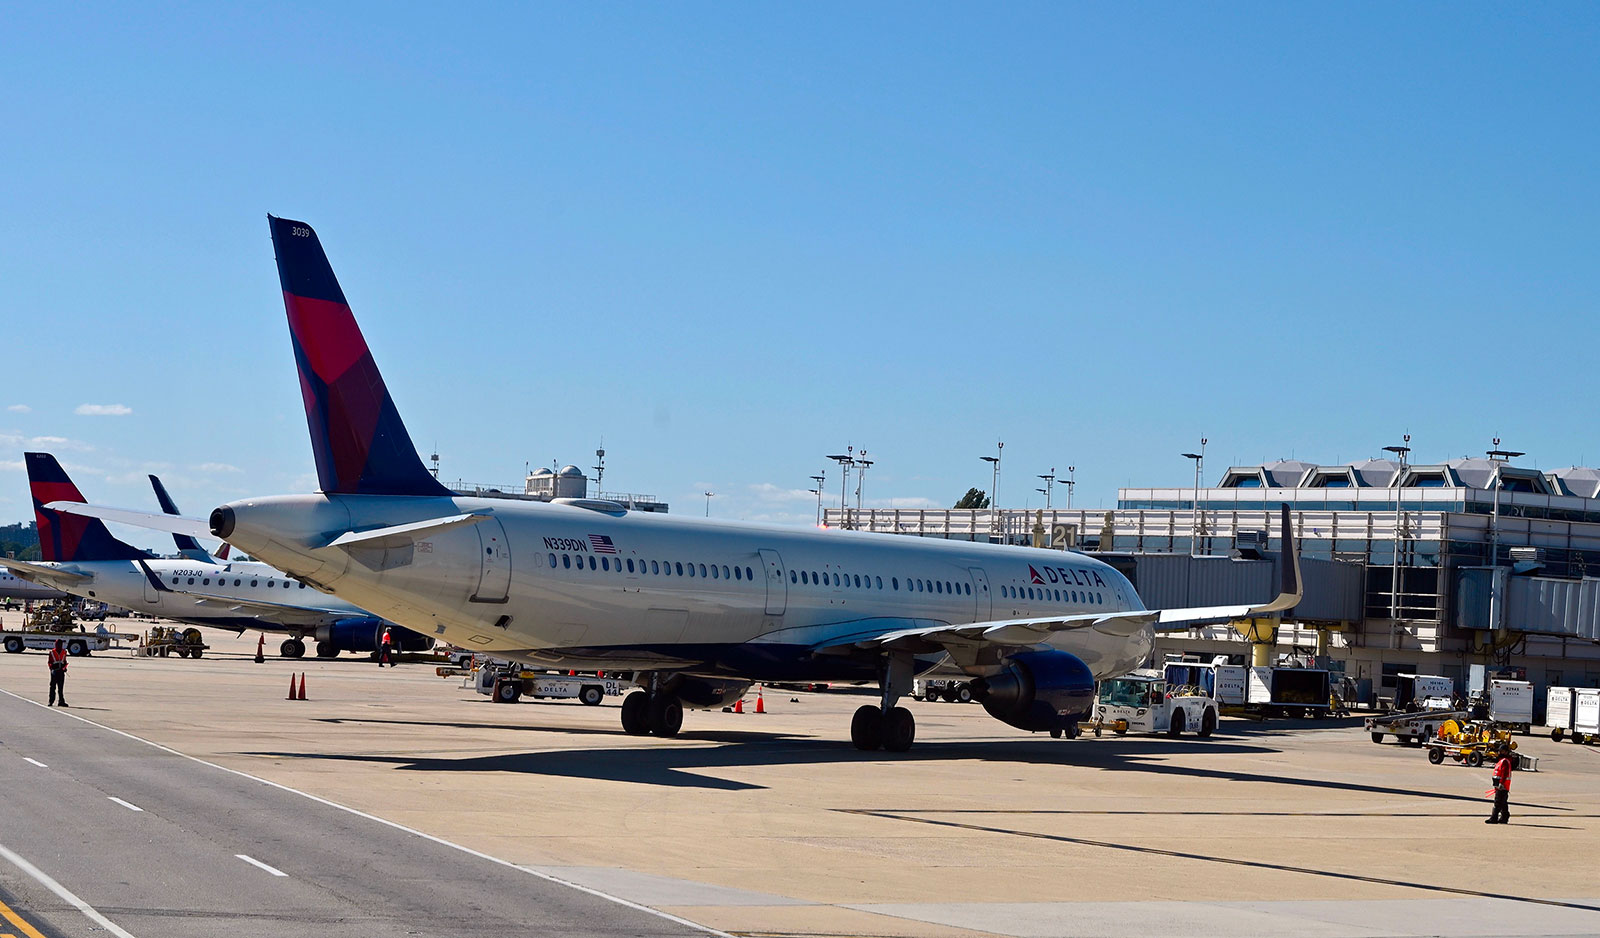 A Delta airlines plane parked at a gate at Ronald Reagan Washington National Airport on September 22, 2020.